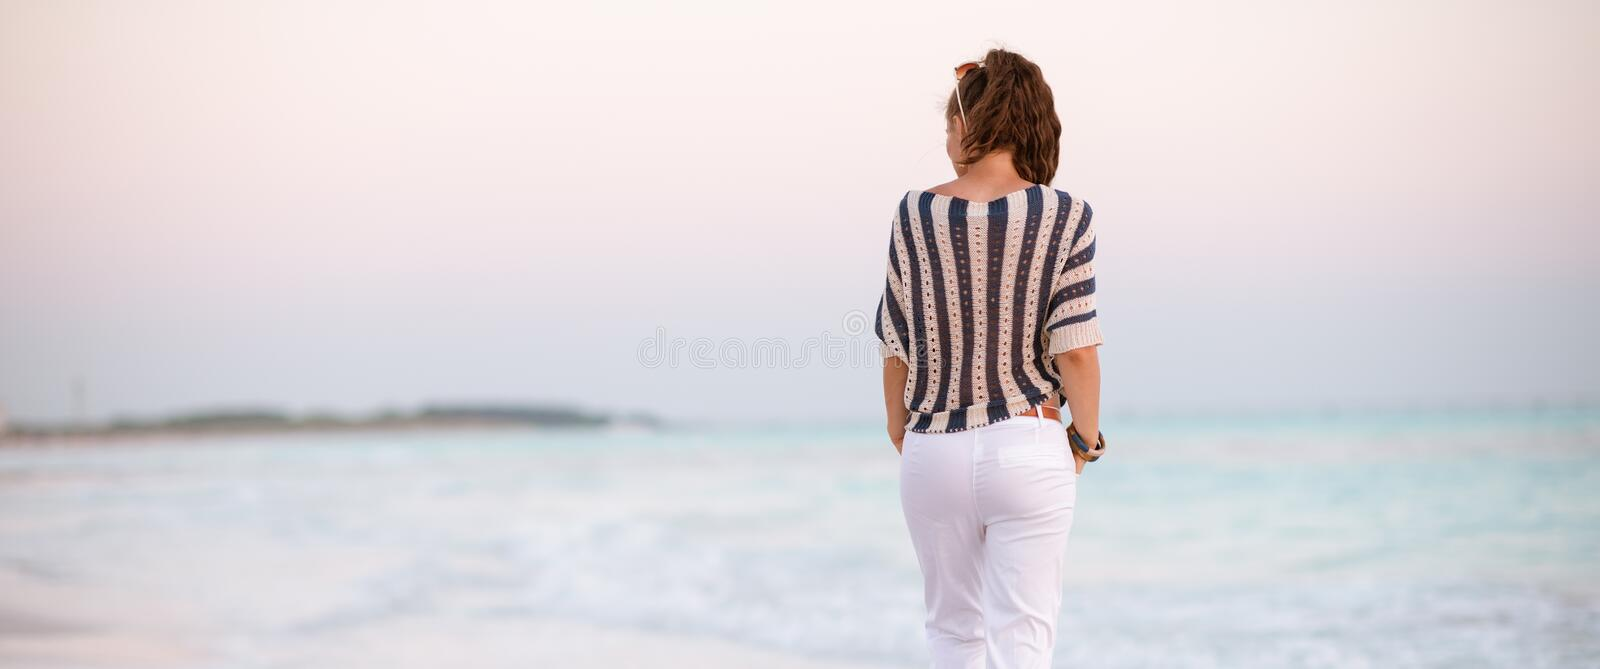 Modern woman on seashore at sunset walking royalty free stock images